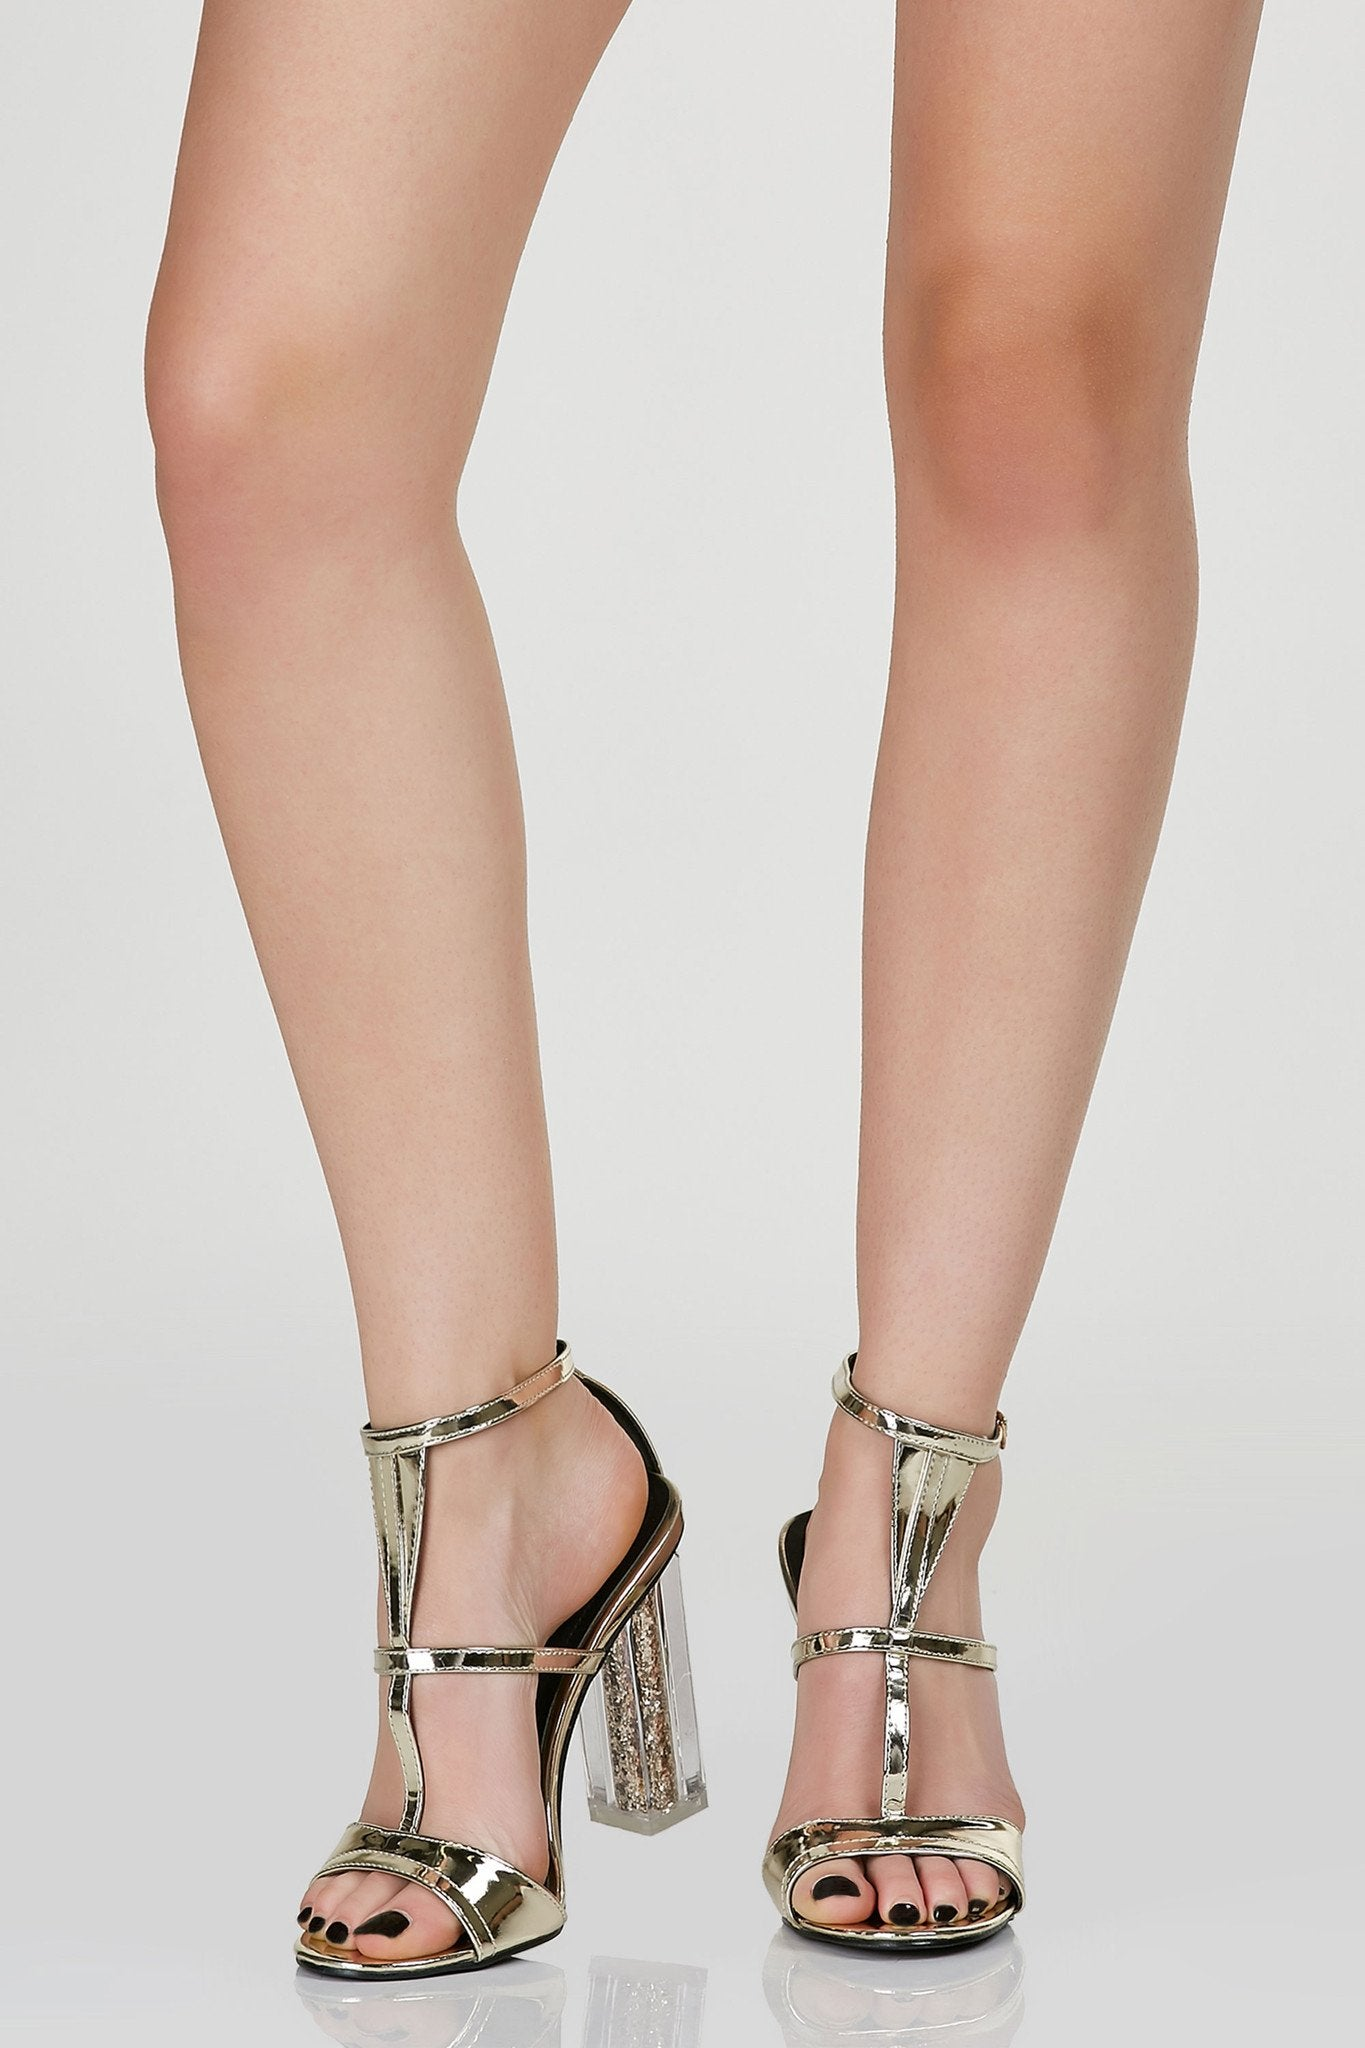 Chic strappy pumps with metallic finish. Ankle strap for fit and closure and clear block heels with sequin detailing.